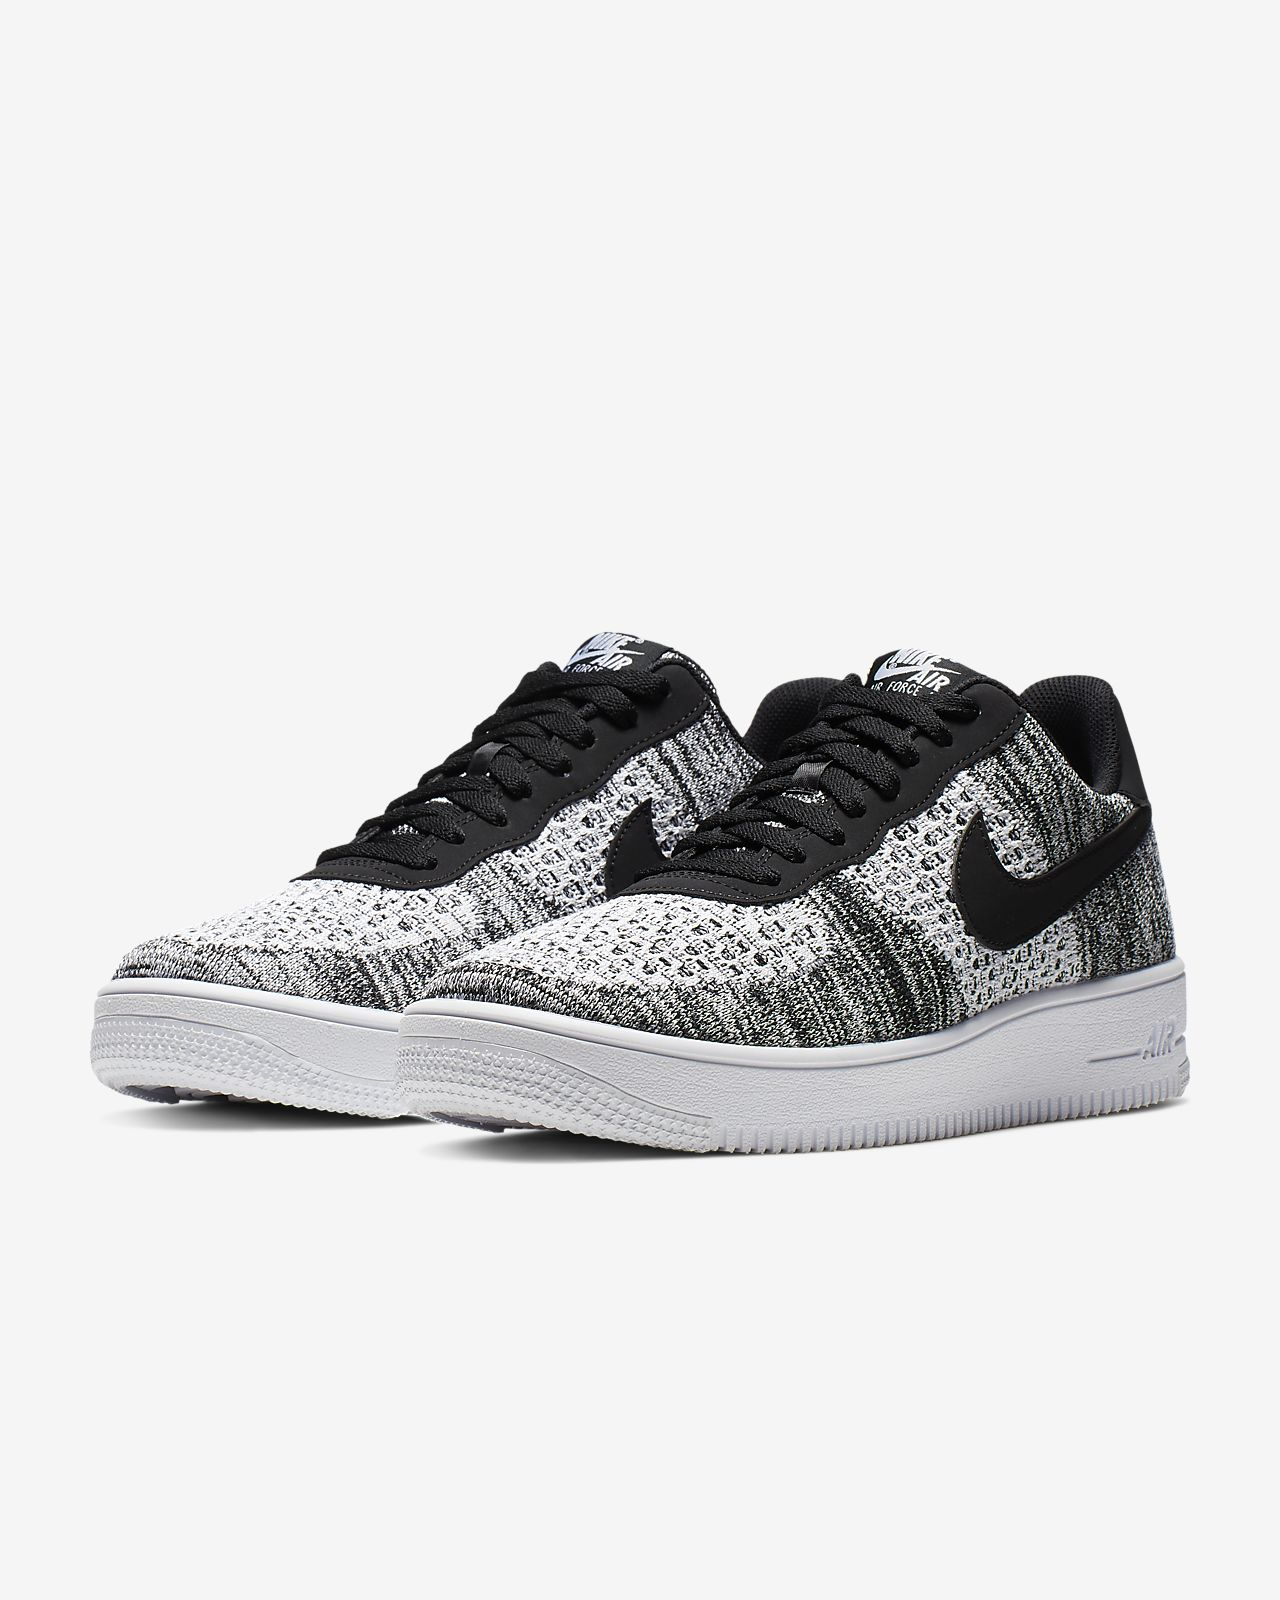 promo code e49e8 2114e Low Resolution Nike Air Force 1 Flyknit 2.0 Men s Shoe Nike Air Force 1  Flyknit 2.0 Men s Shoe